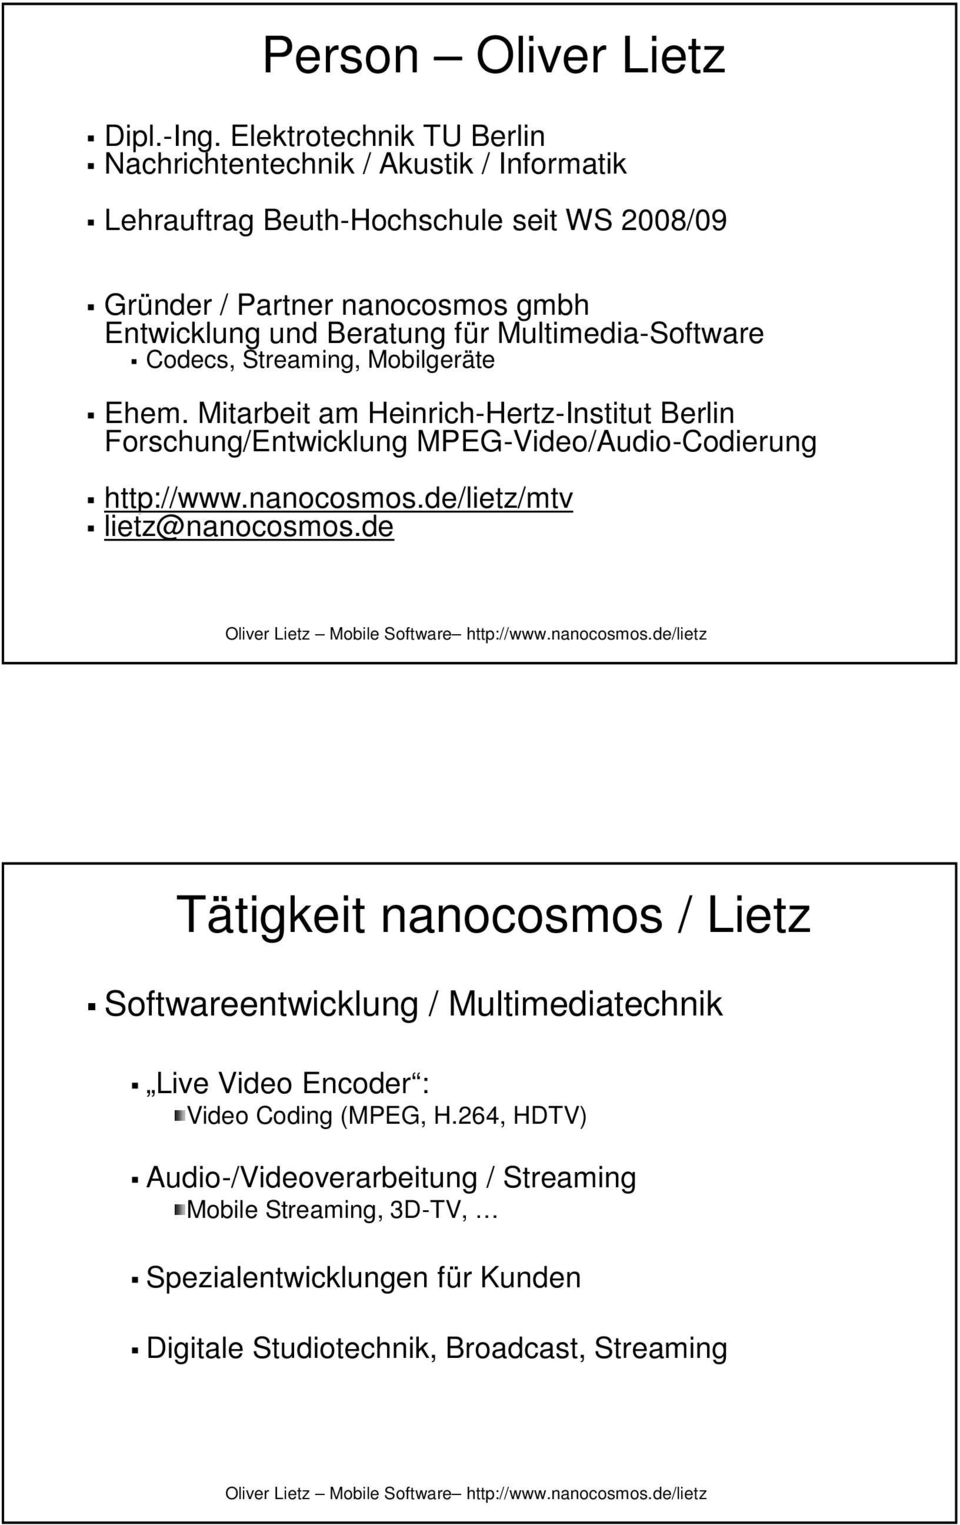 f r Multimedia-Software Codecs, Streaming,, Mobilgeräte Ehem.